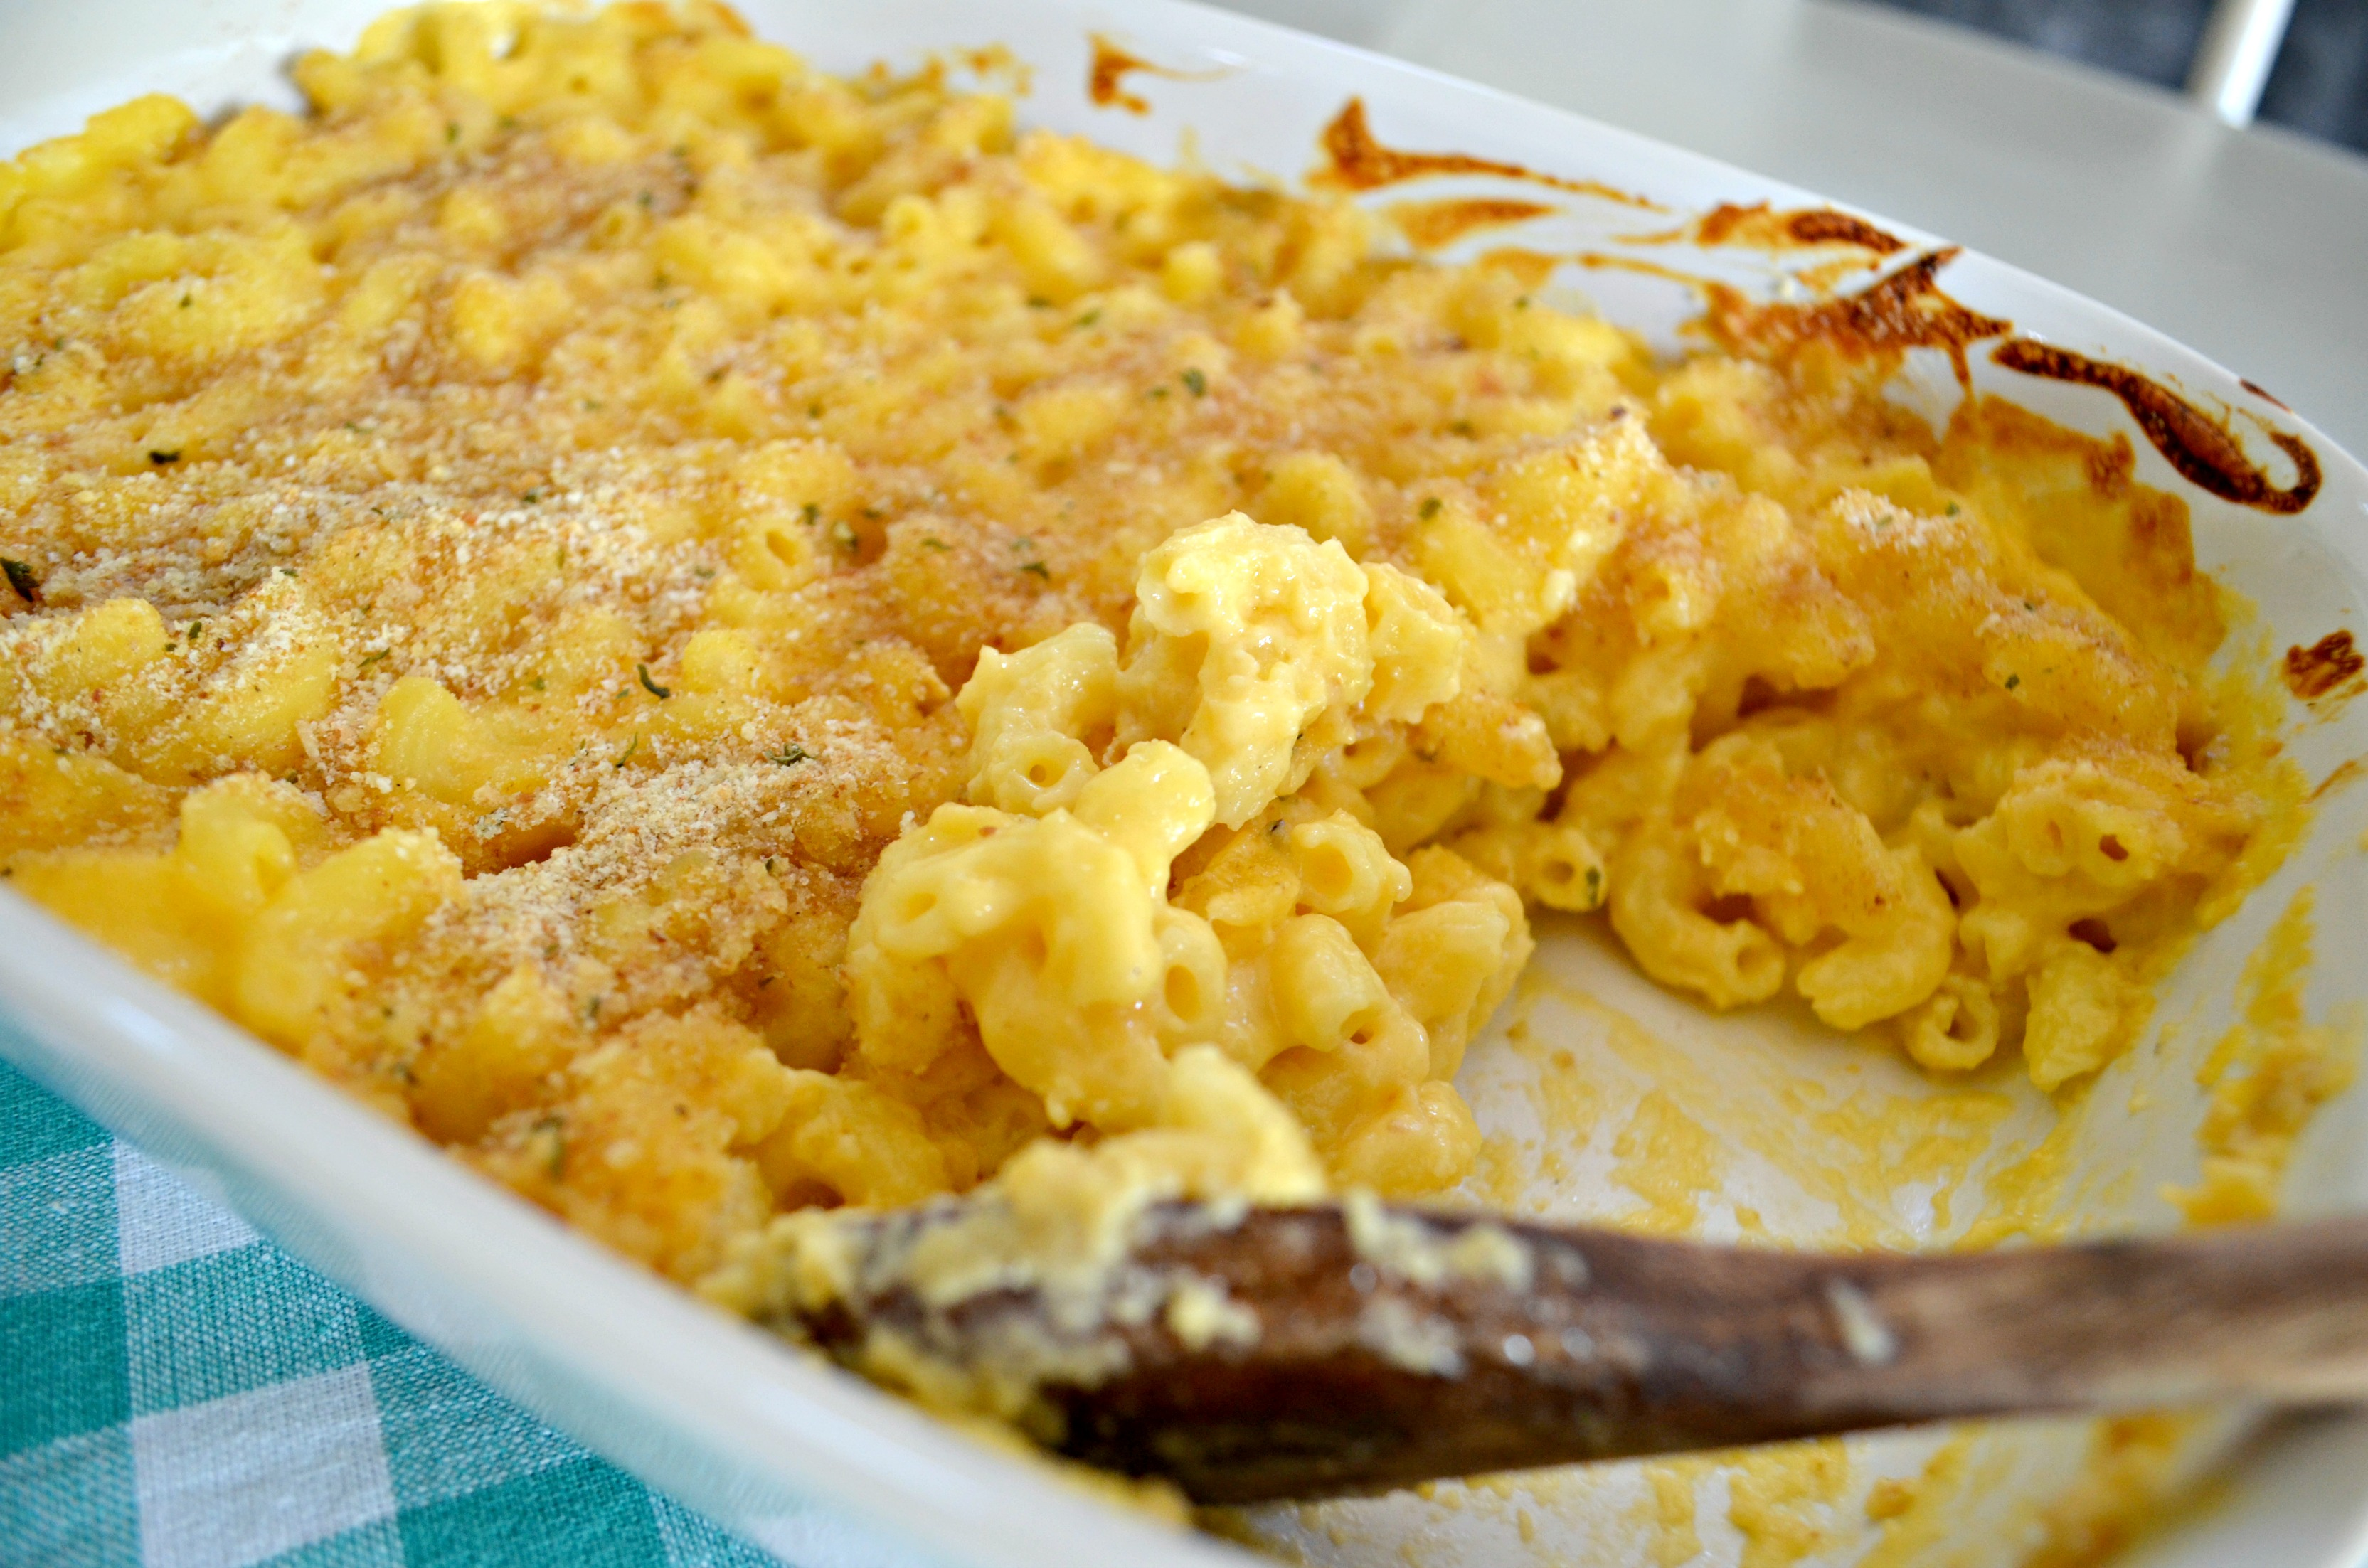 Classic Mac and Cheese just like my mom made! – Baked and ready to serve